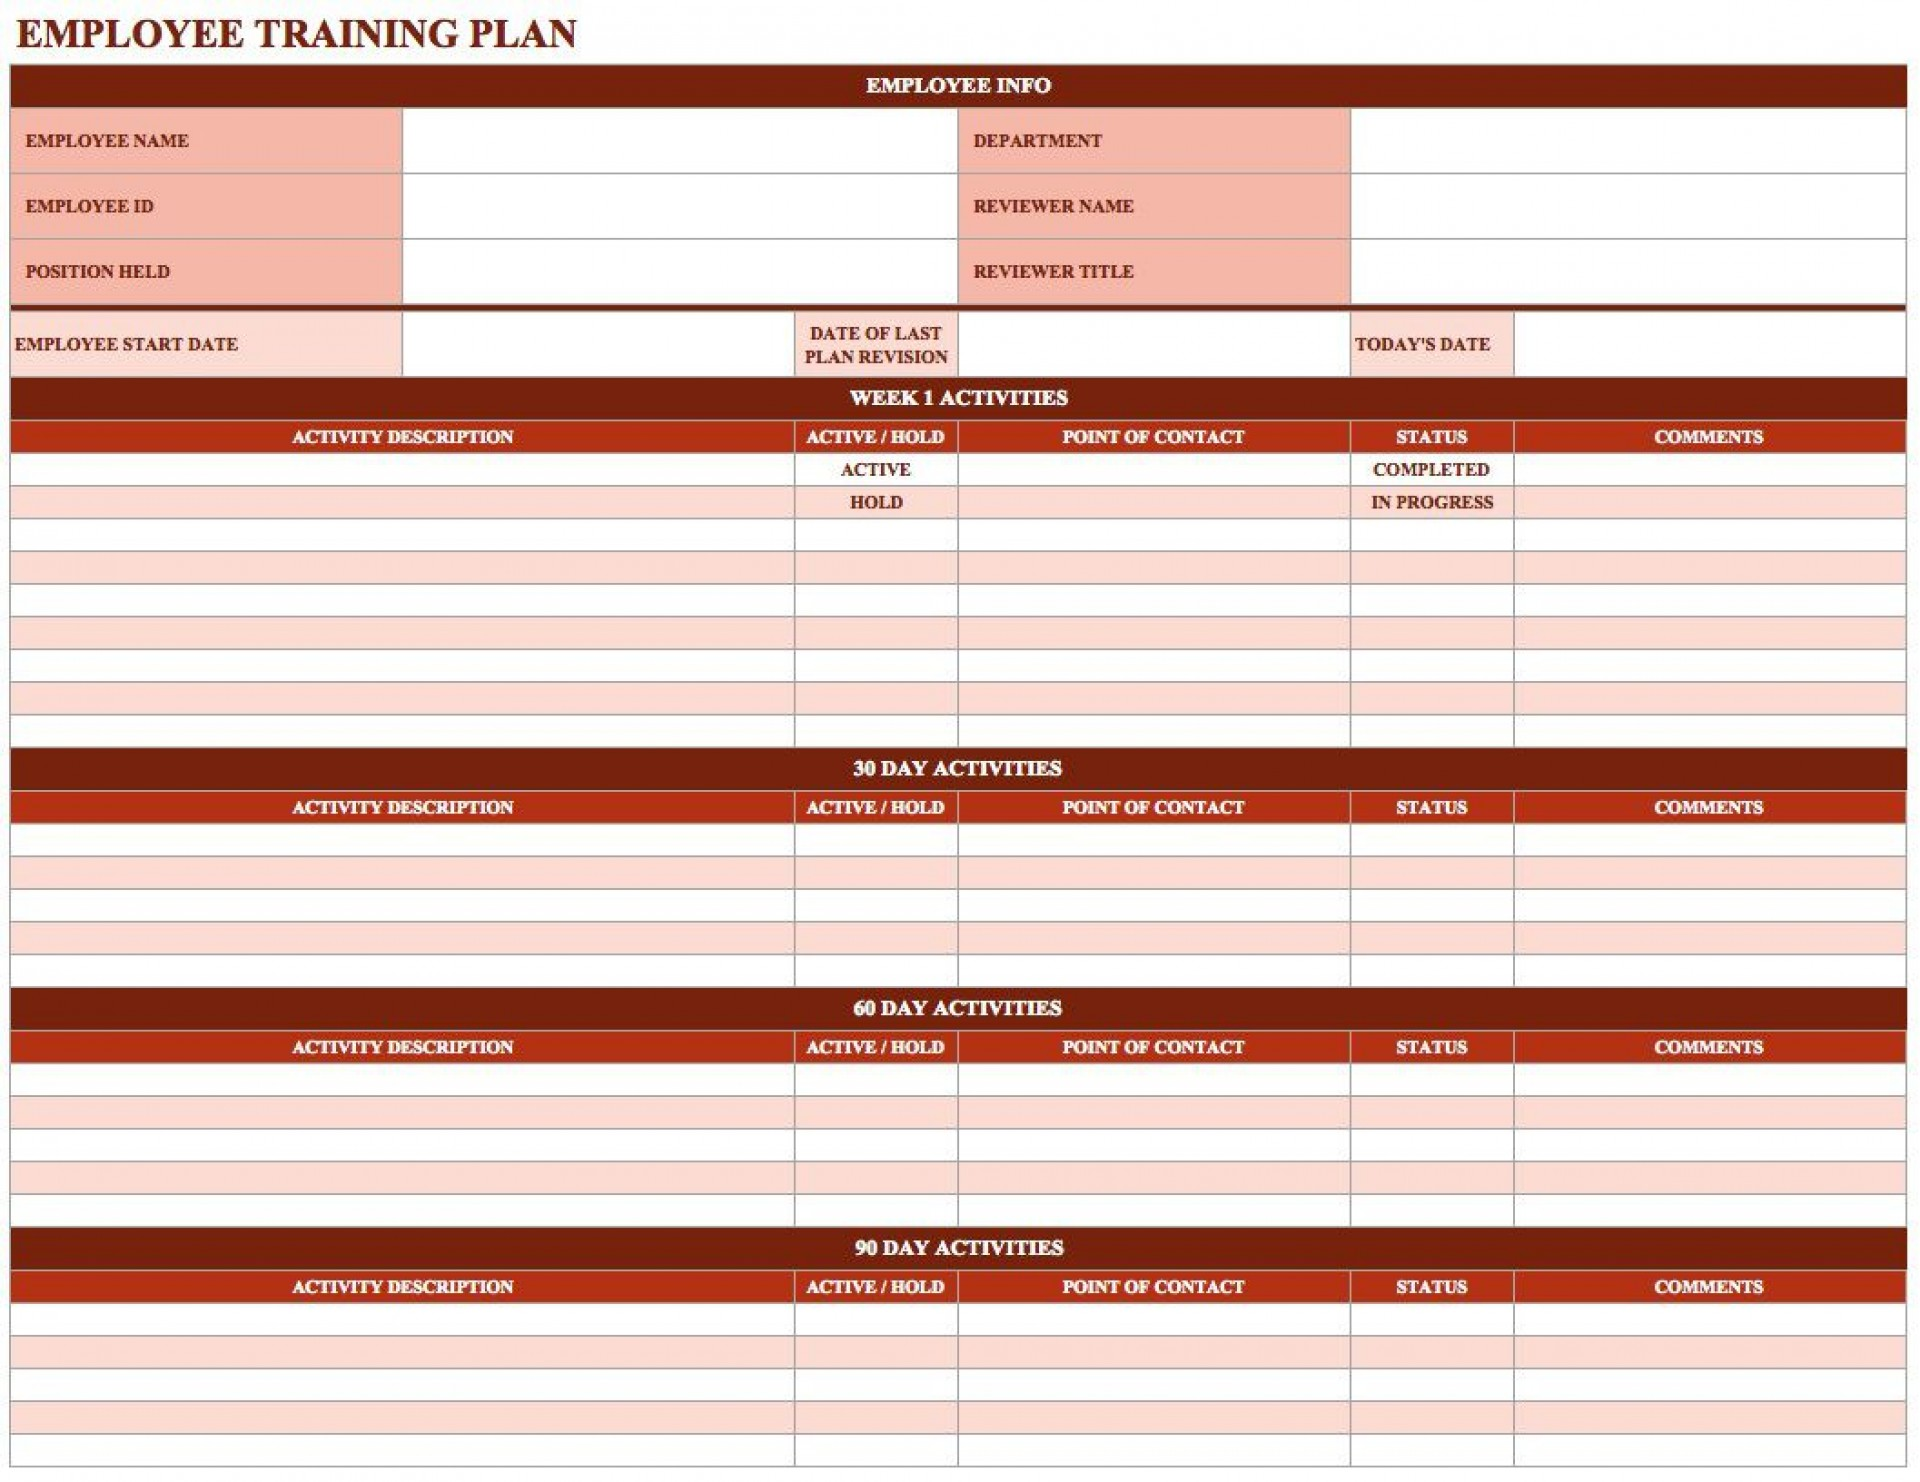 000 Shocking Employee Training Plan Template Highest Clarity  Free Individual Word New1920